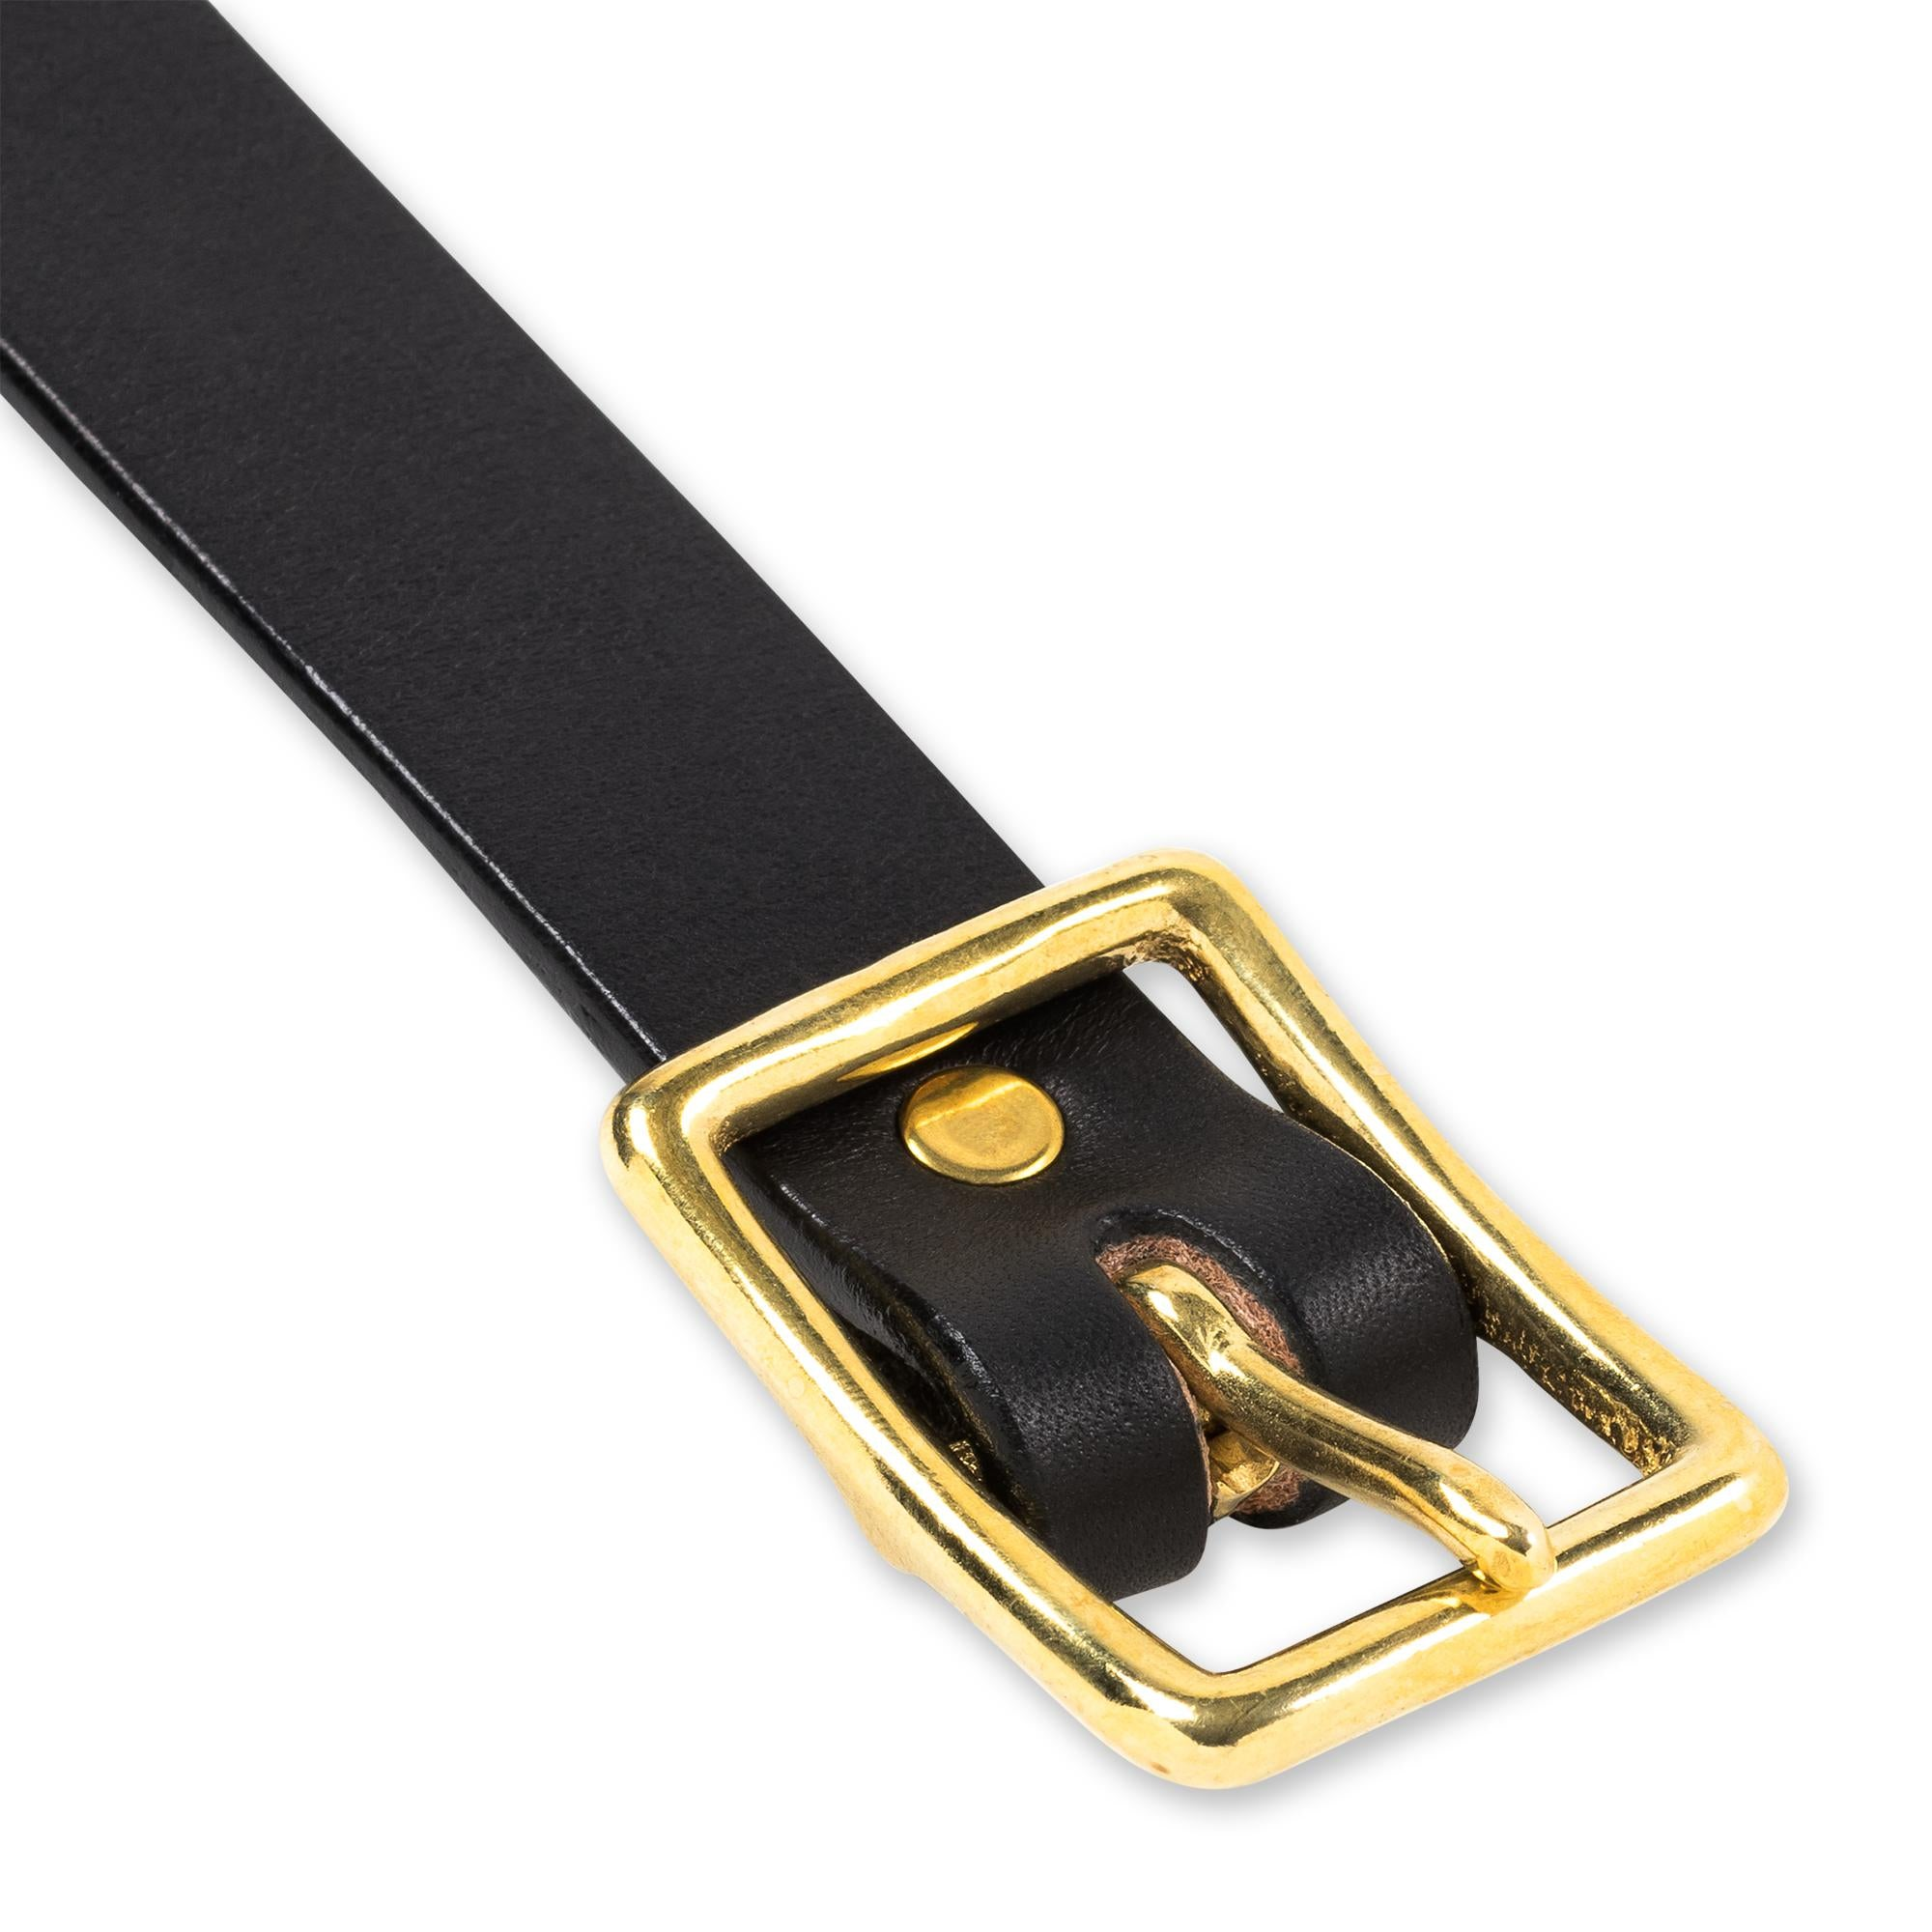 Center Bar Belt in Jet & Brass Belt - Blake Goods - English Bridle Leather Belt